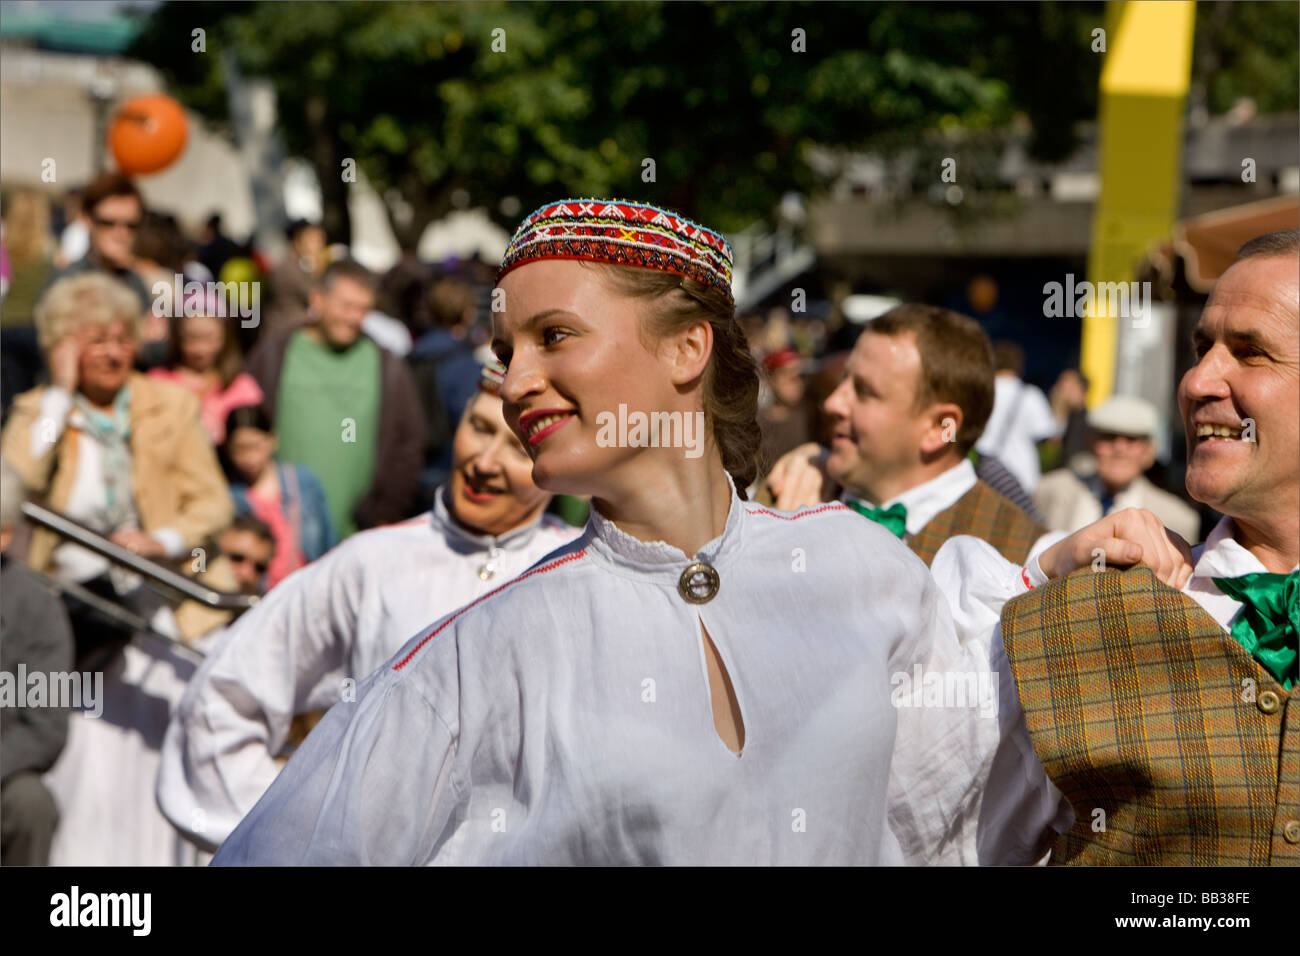 A traditional Latvian dancer at the Thames Festival, London, UK 2008 - Stock Image